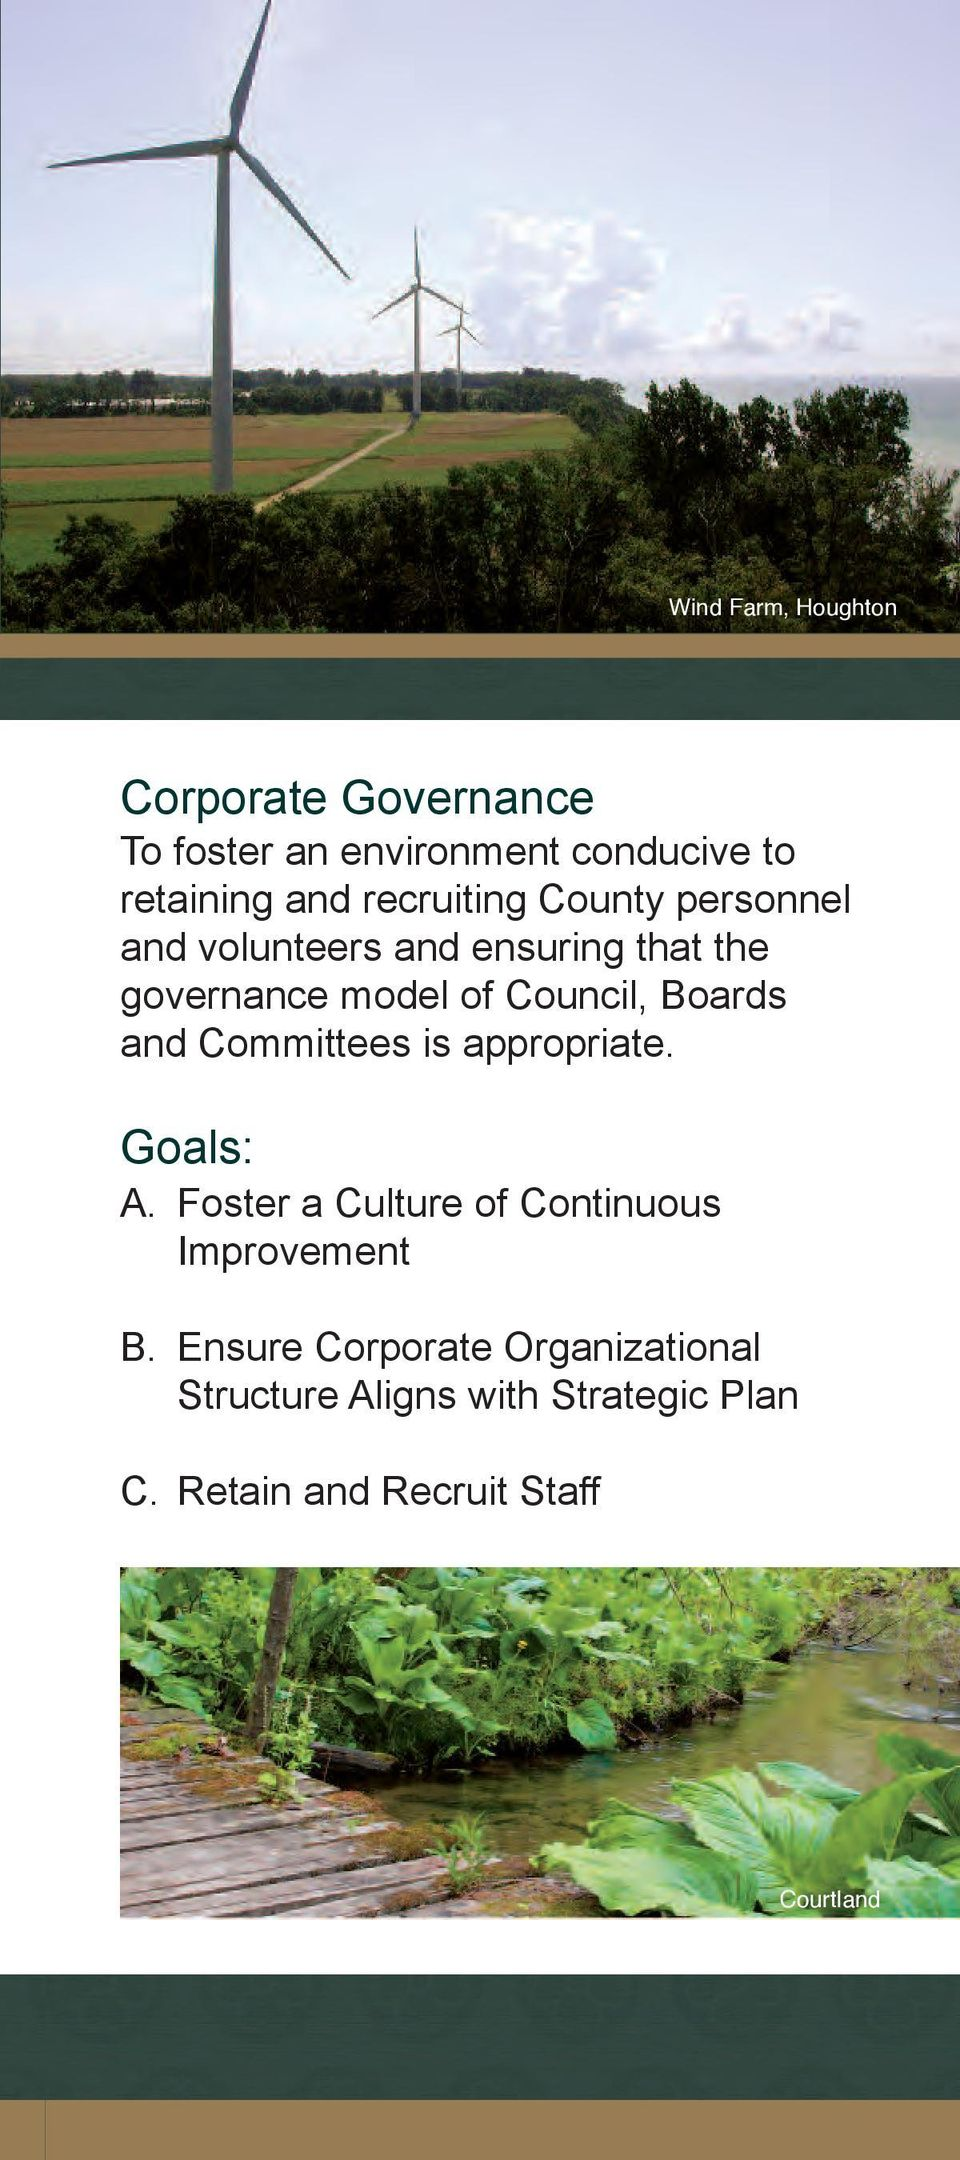 Boards and Committees is appropriate. Goals: A. Foster a Culture of Continuous Improvement B.